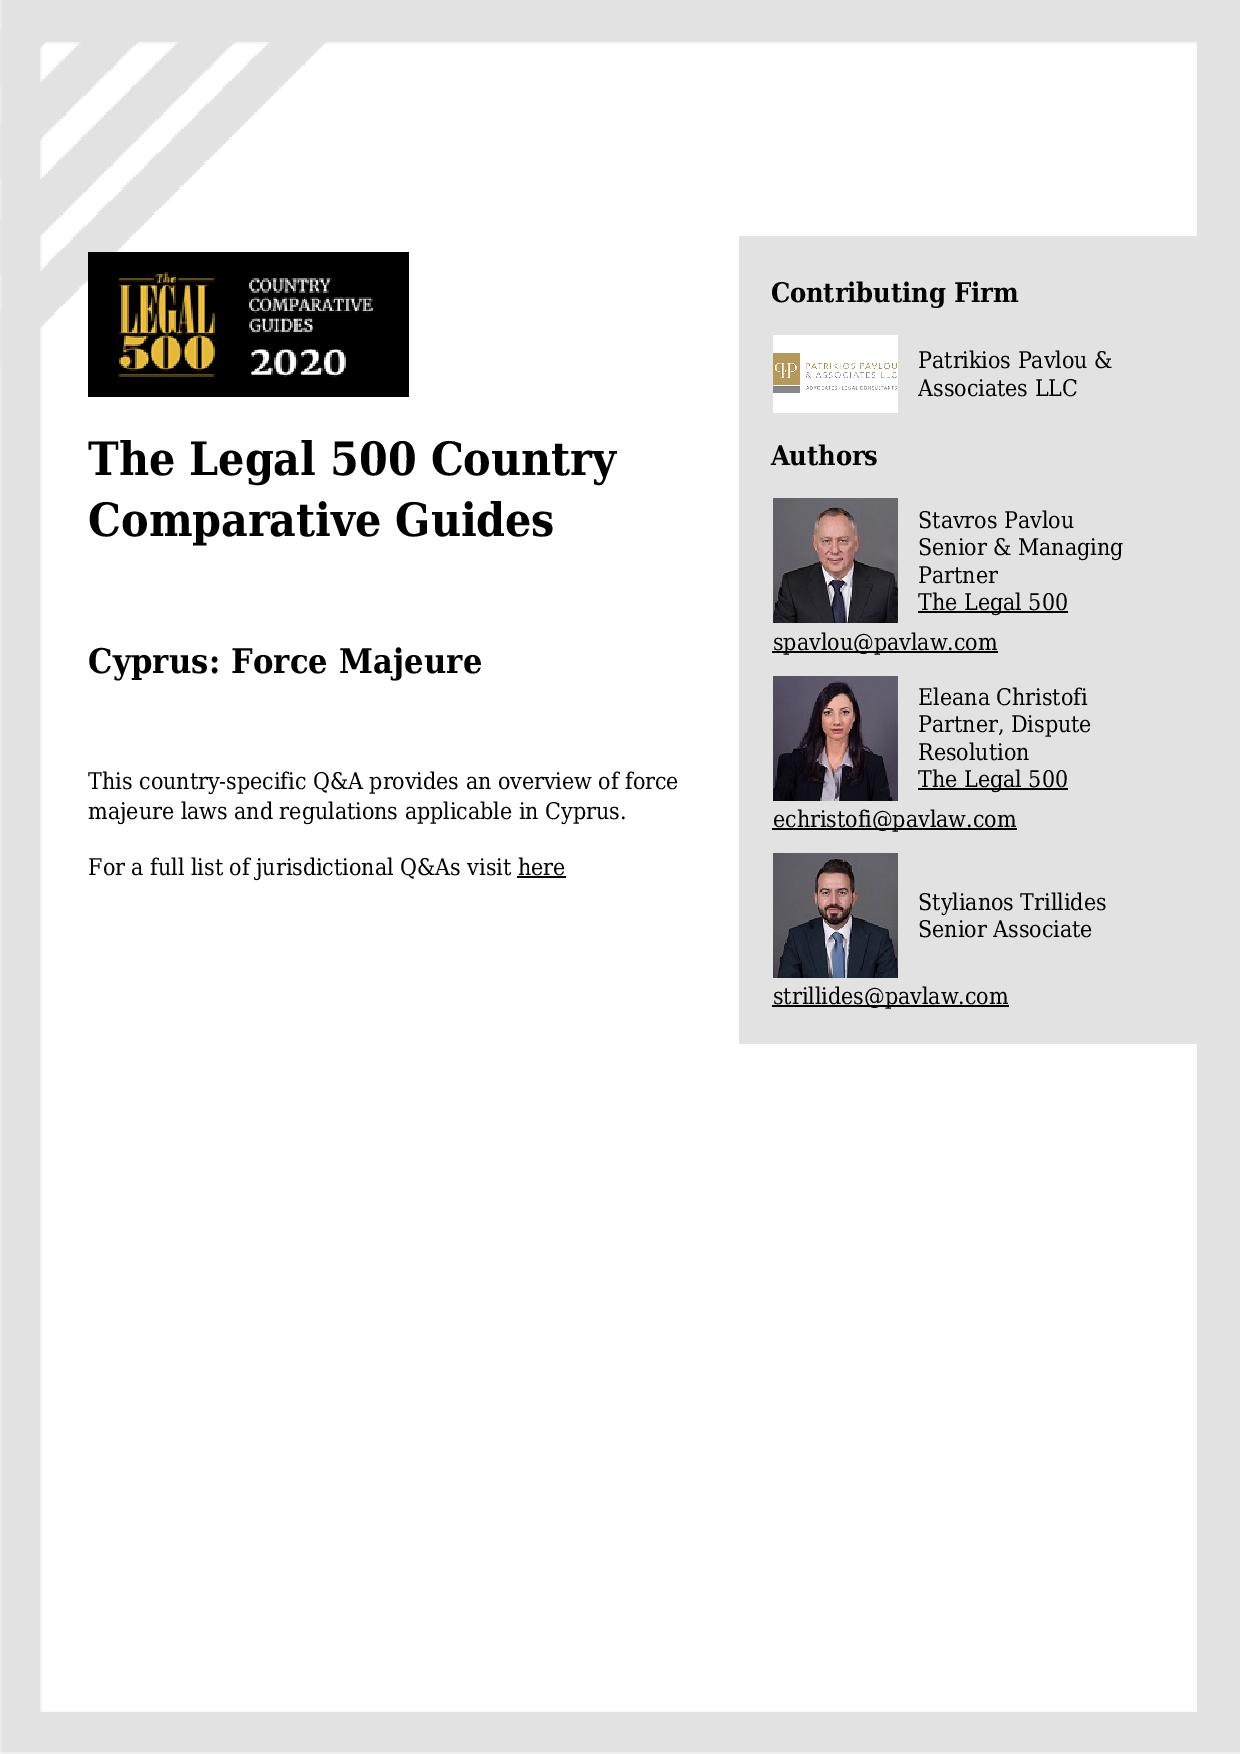 Patrikios Pavlou & Associates LLC: The Legal 500 Country Comparative Guides